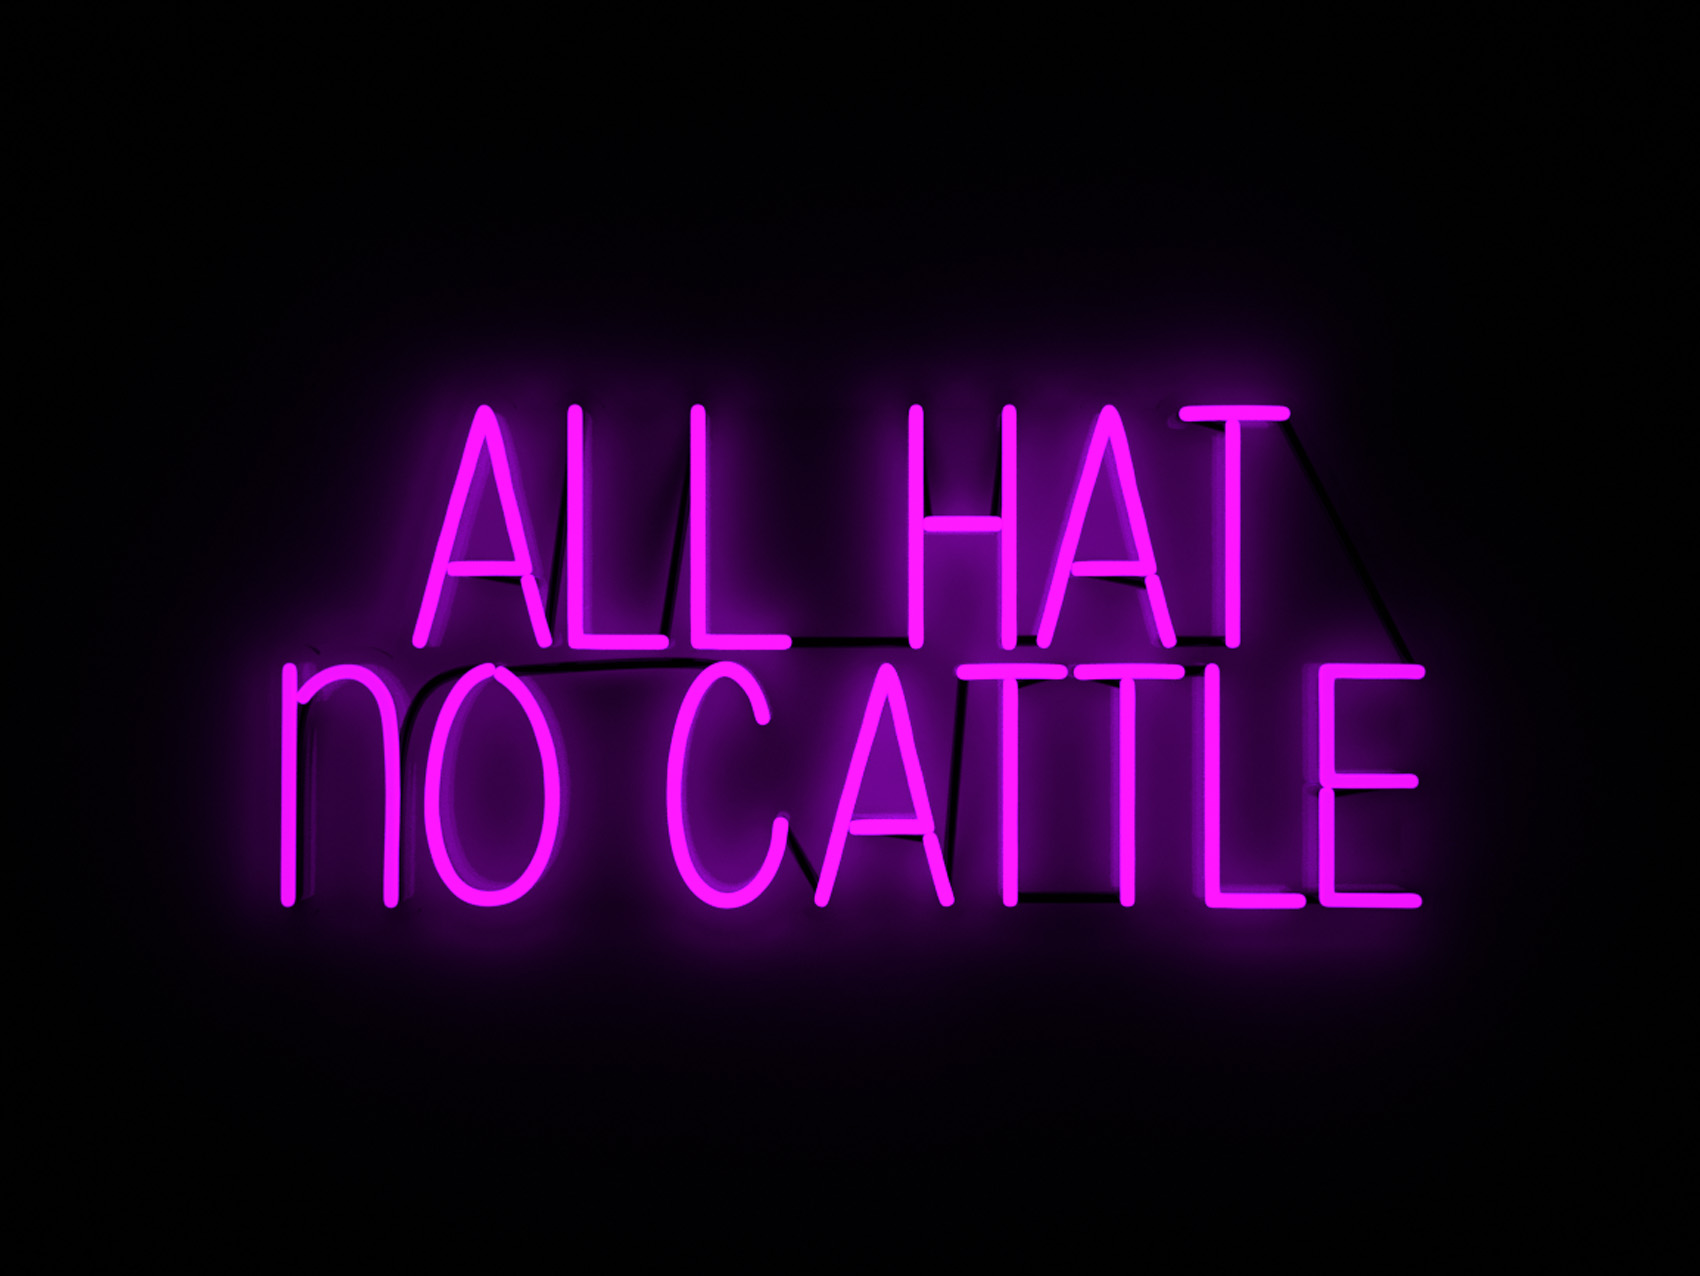 All Hat No Cattle